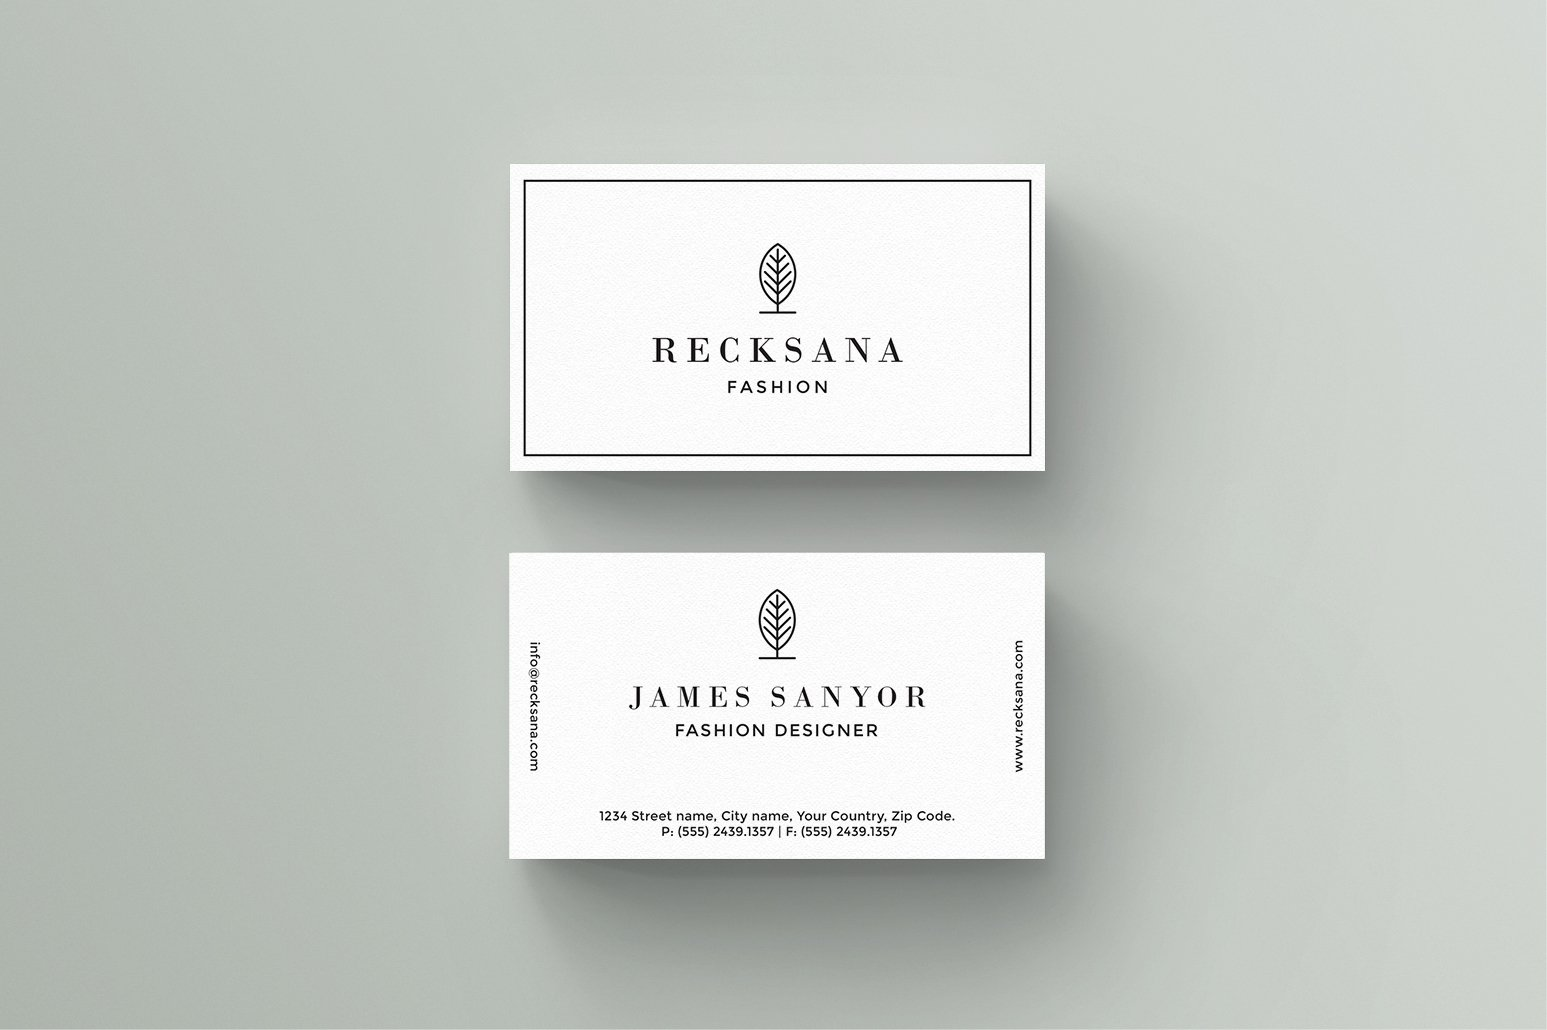 buiness card template - recksana business card template business card templates